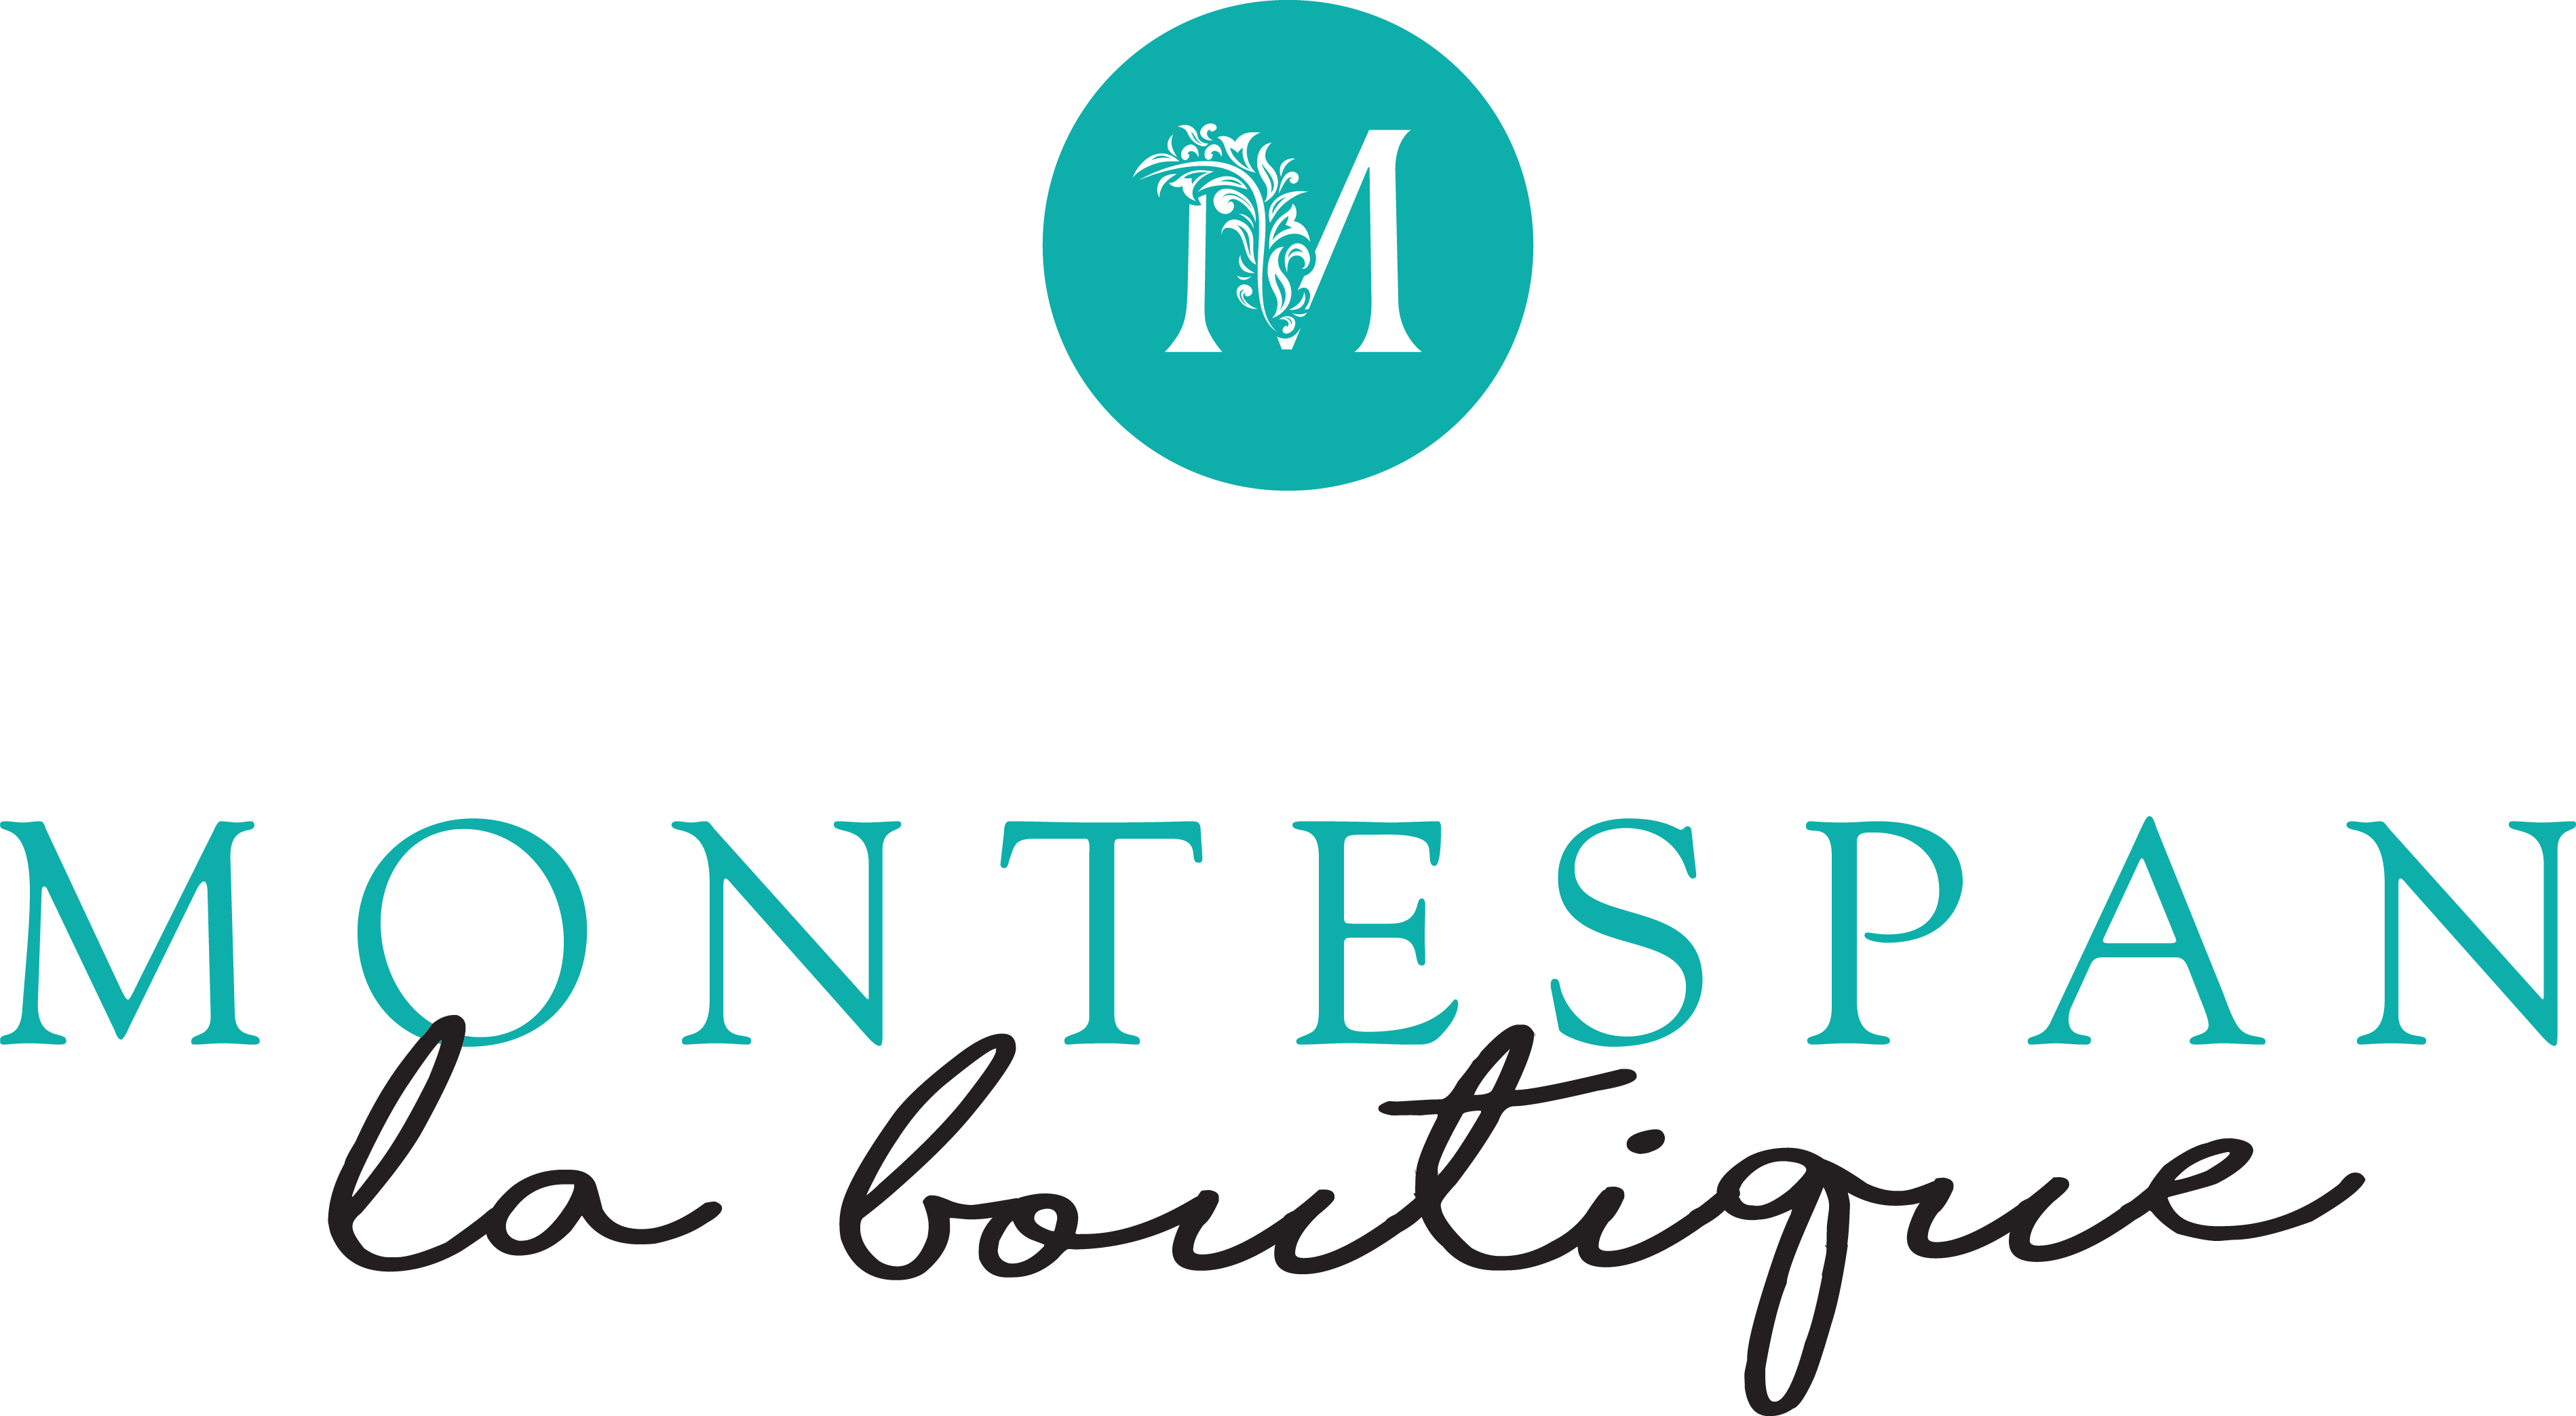 La boutique Ateliers Montespan